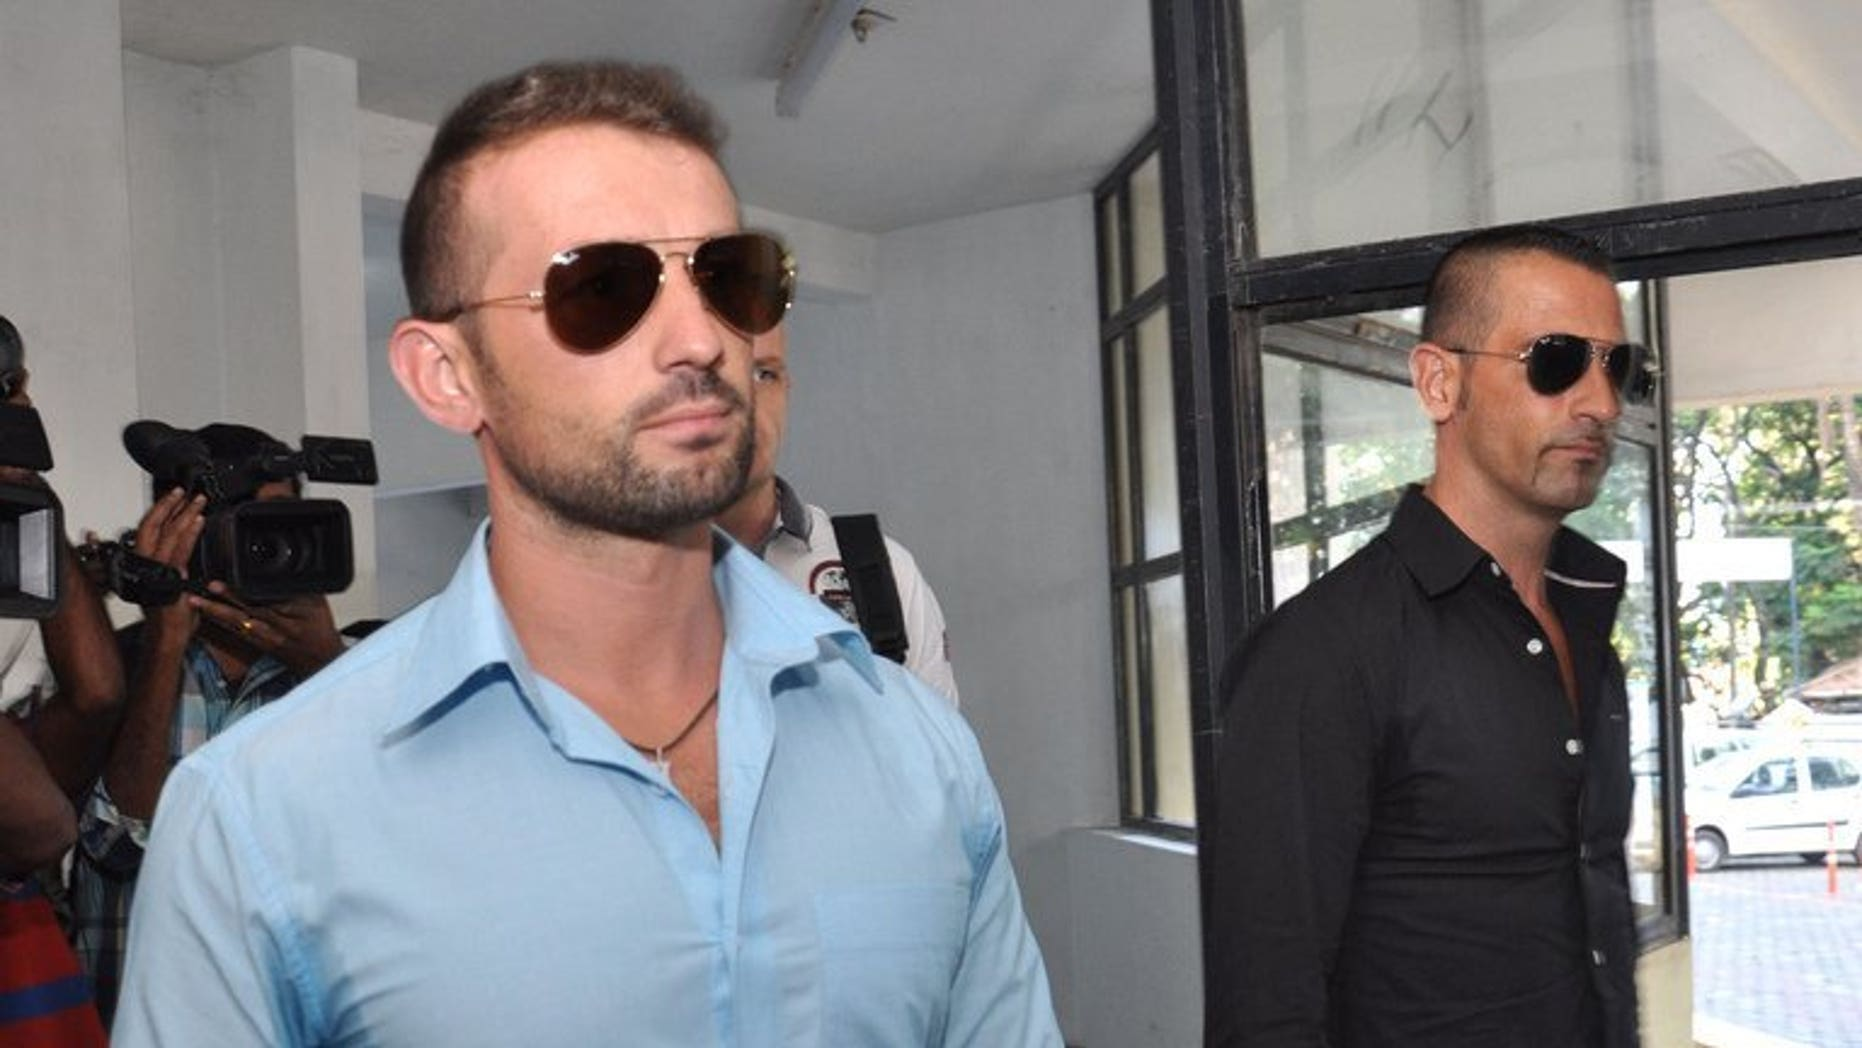 Italian marines Massimiliano Latorre (R) and Salvatore Girone come out from the police commissioners office in Kochi on December 20, 2012. Four Italian marines summoned to give evidence in the trial of Latore and Girone over the shooting deaths of two Indian fishermen have refused to travel to the country, a report said Tuesday.